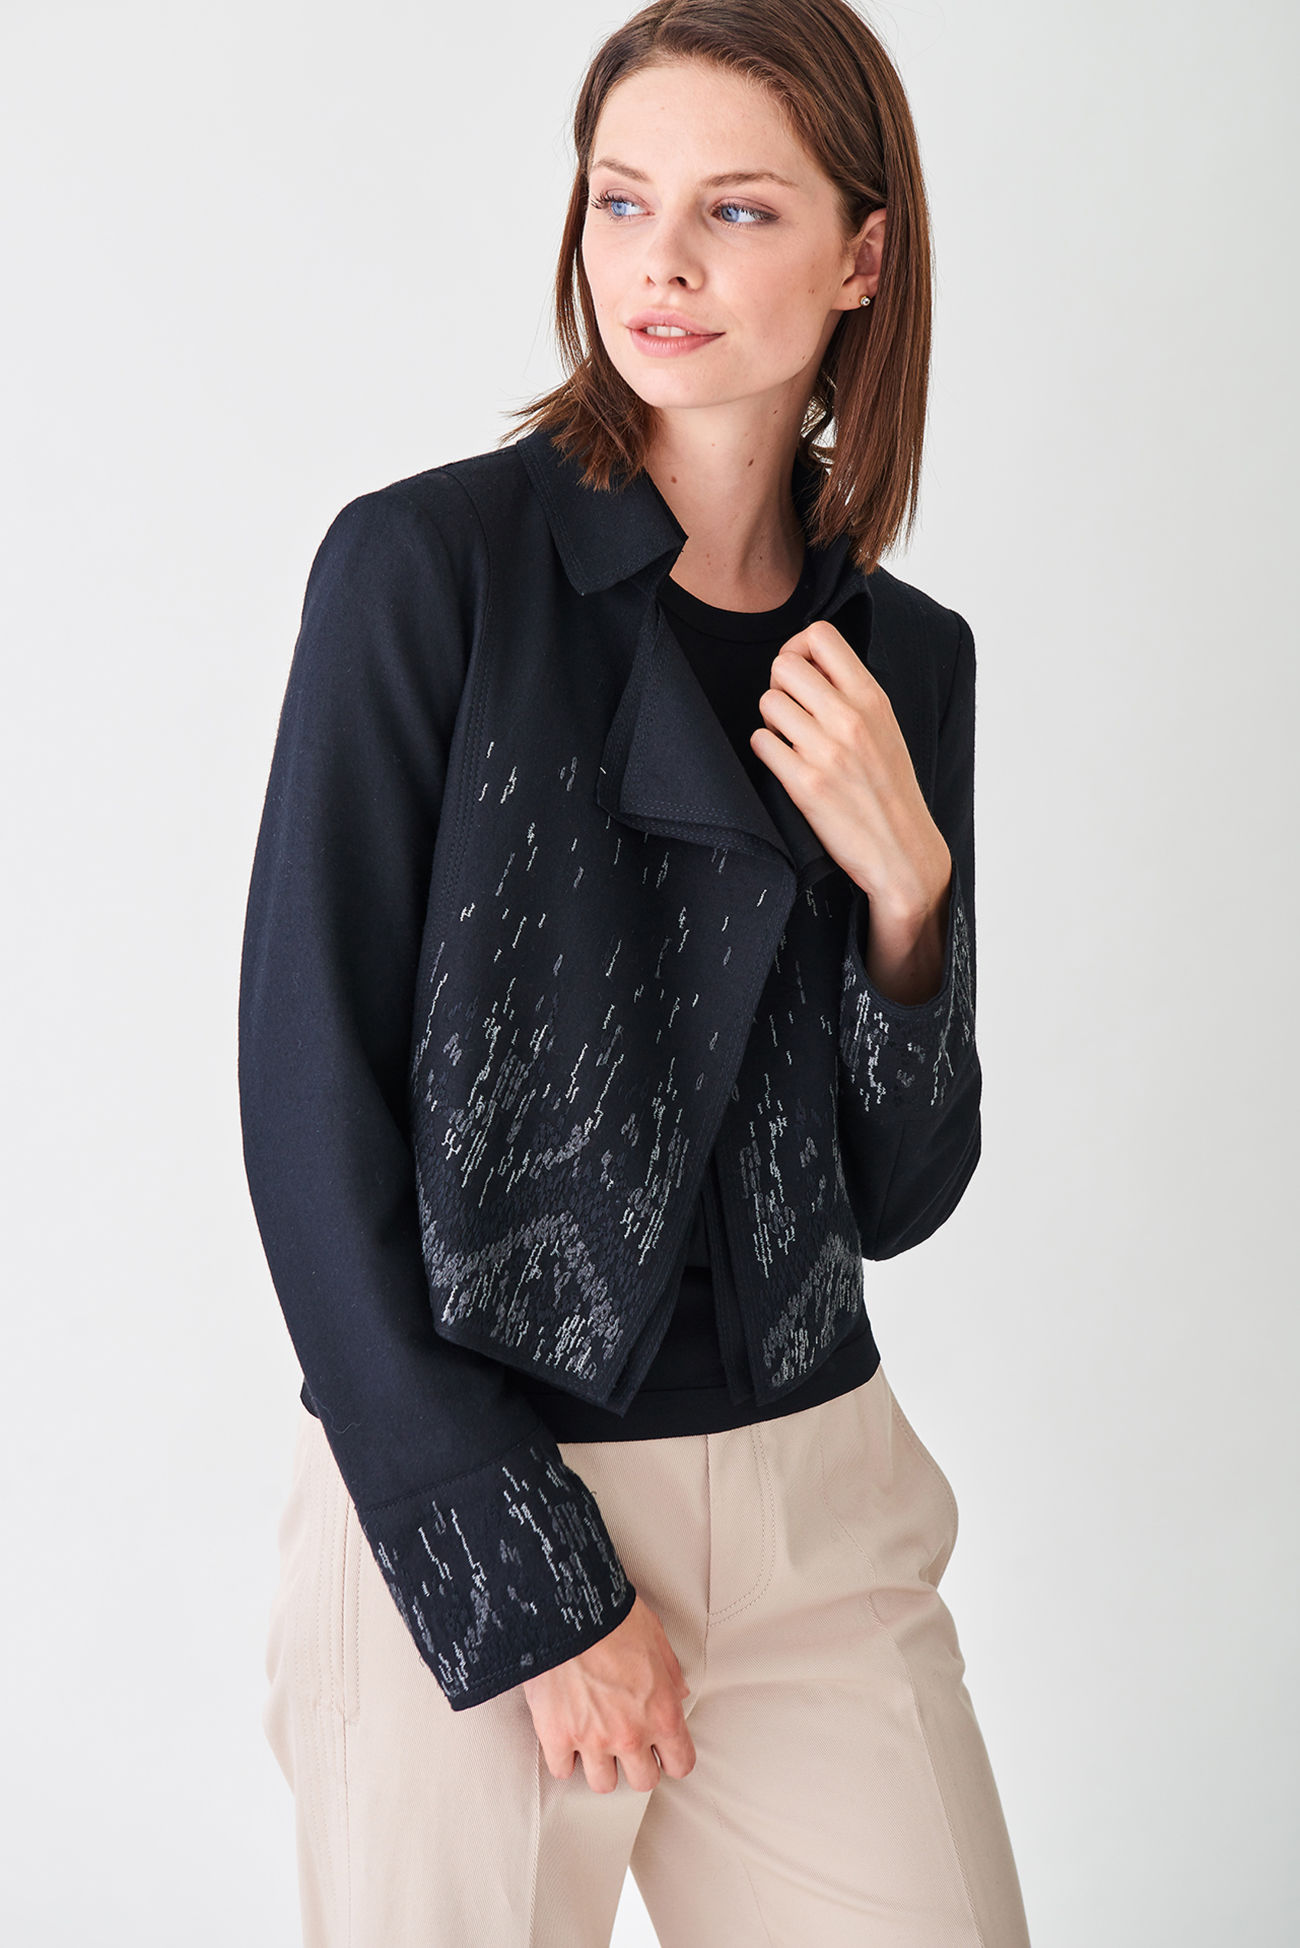 Casual bolero jacket made of fine wool